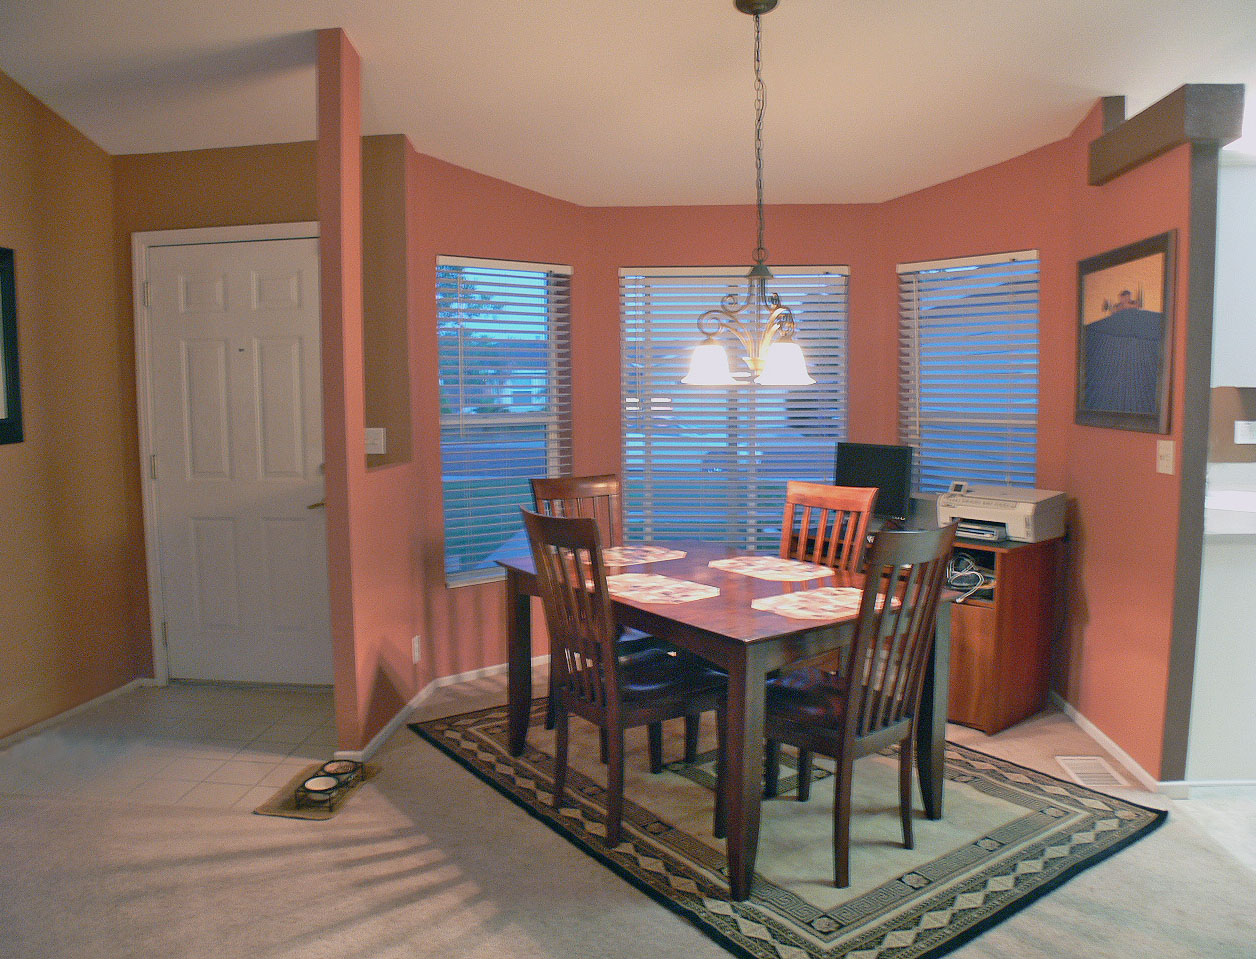 Formal dining area and front entrance.